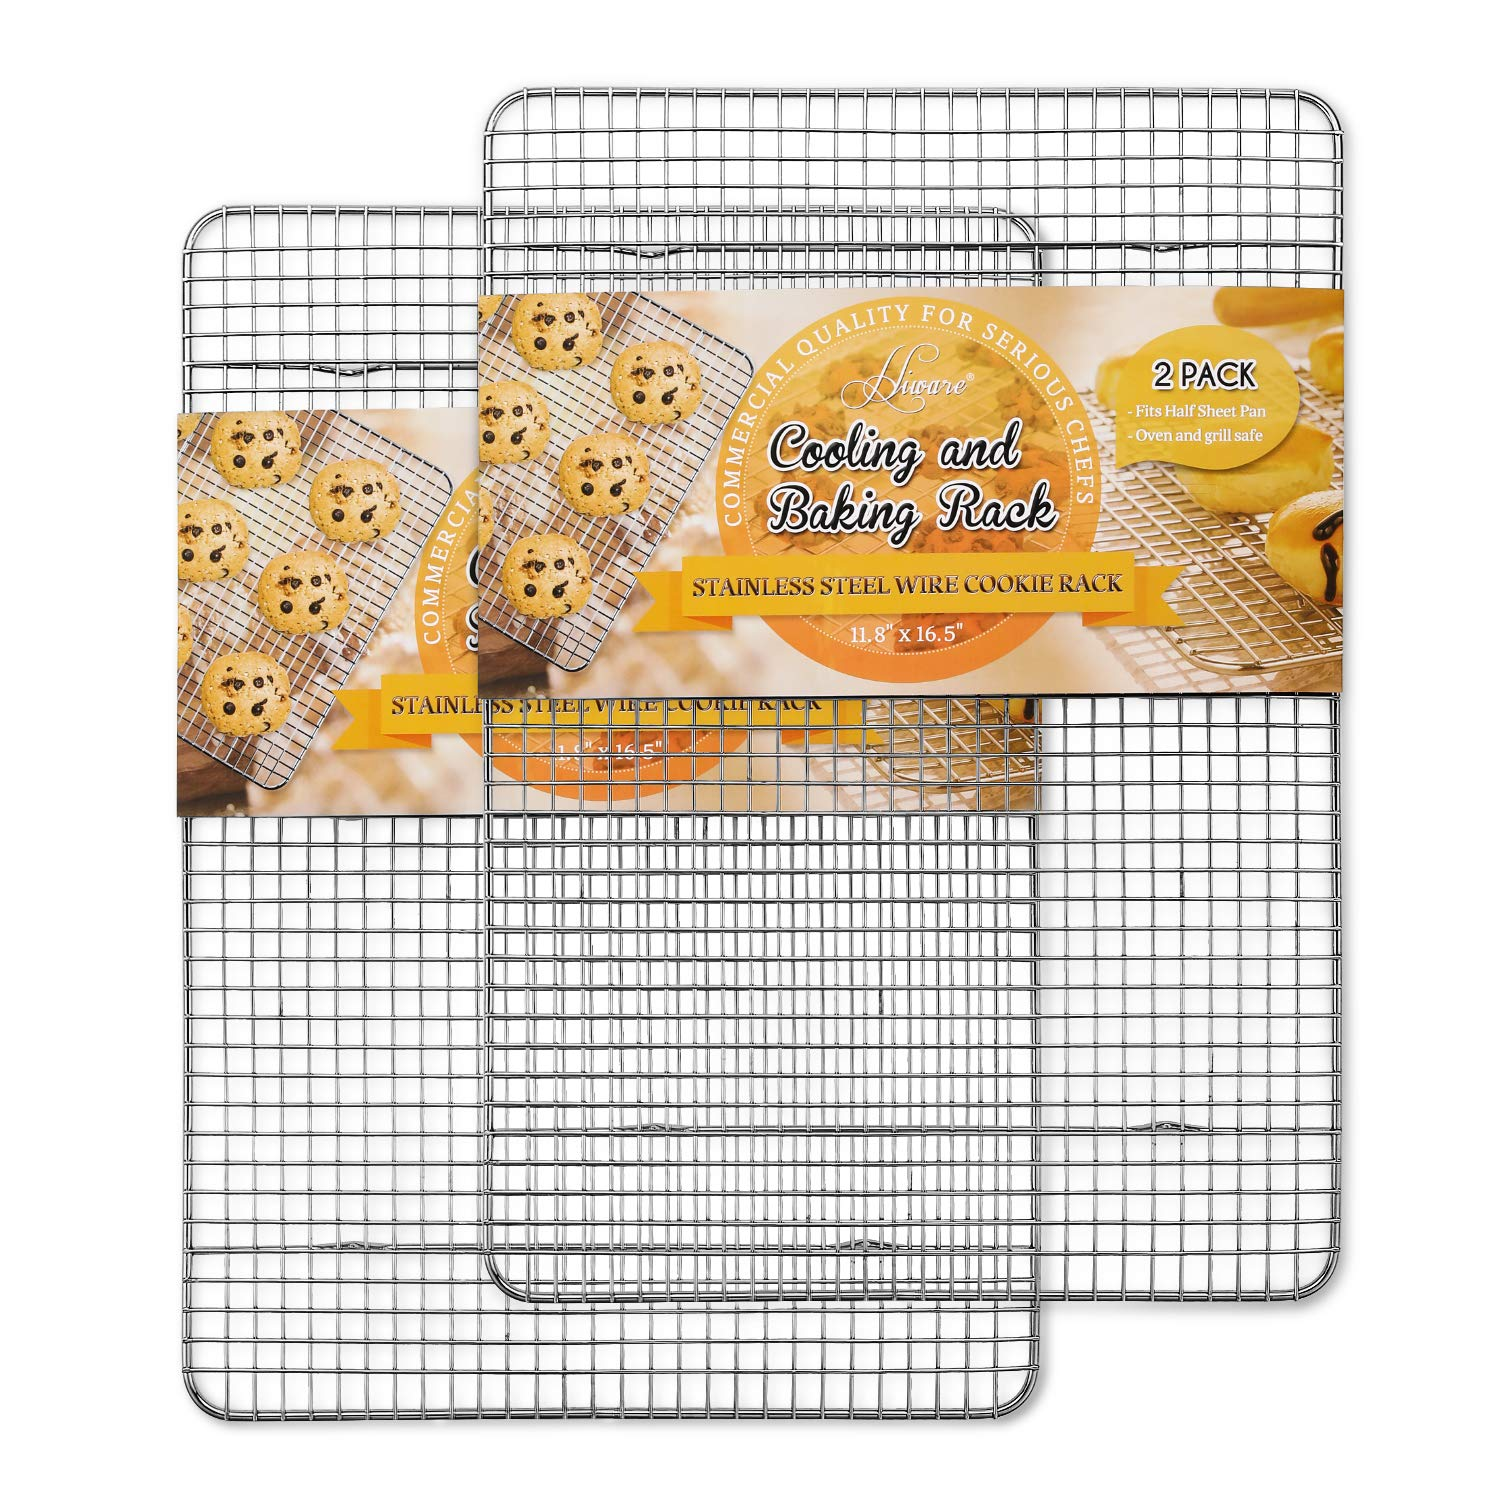 Hiware 2-Pack Cooling Racks for Baking - 11.8'' x 16.5'' - Stainless Steel Wire Cookie Rack Fits Half Sheet Pan, Oven Safe for Cooking, Roasting, Grilling